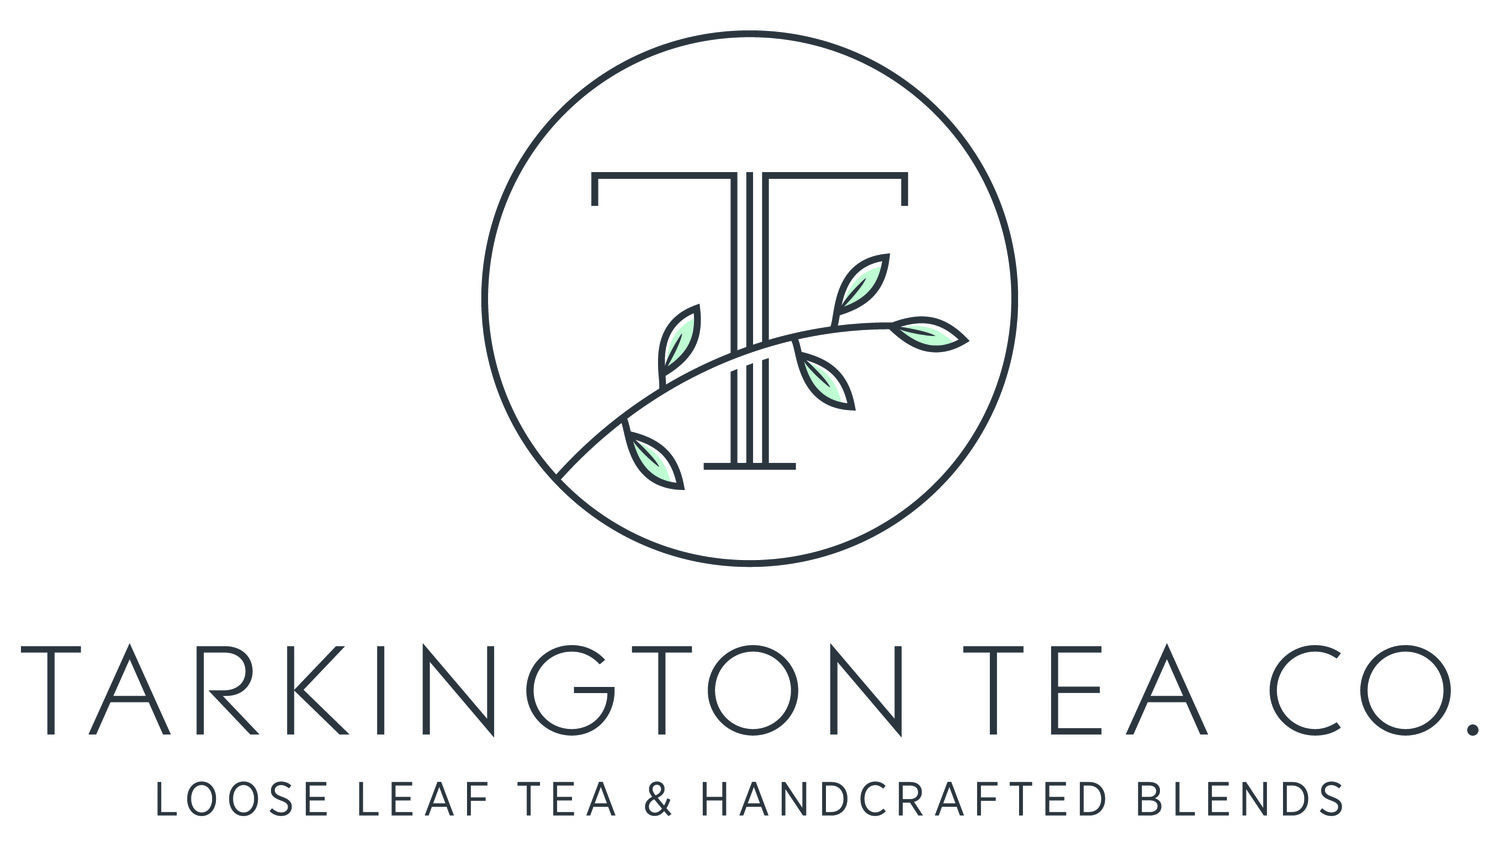 Tarkington Tea